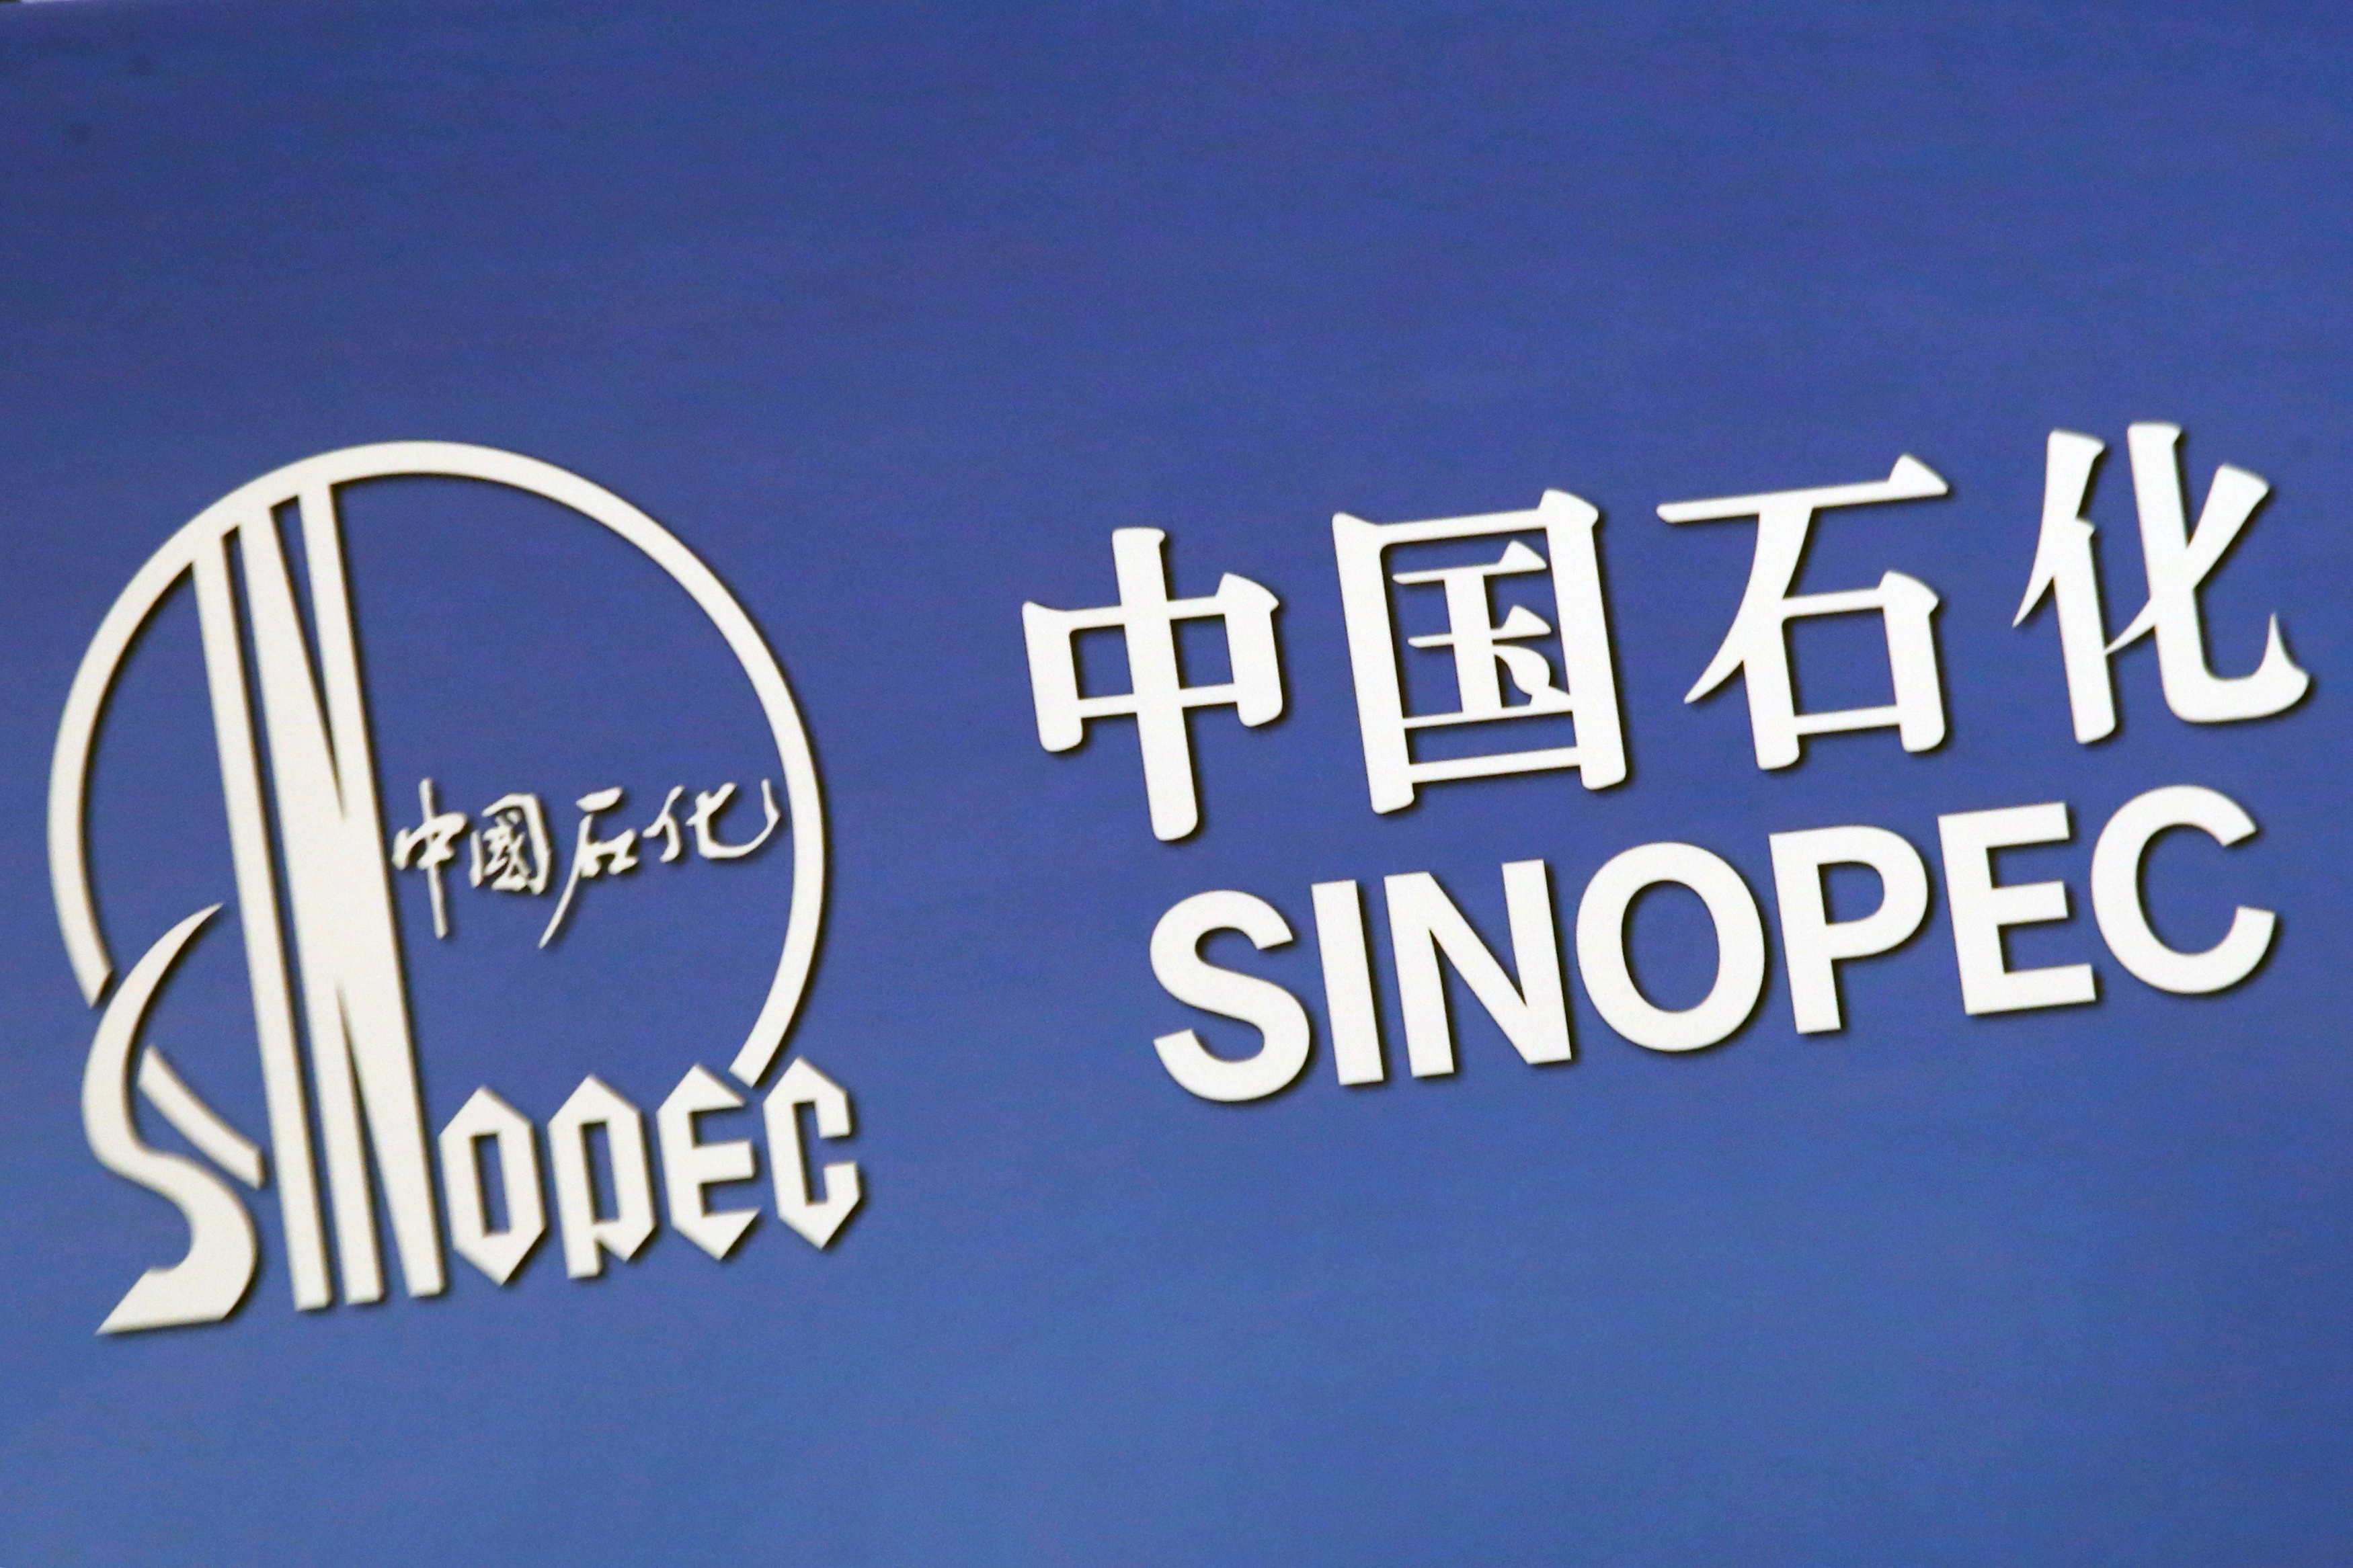 The company logo of China's Sinopec Corp is displayed at a news conference in Hong Kong, China March 26, 2018. REUTERS/Bobby Yip